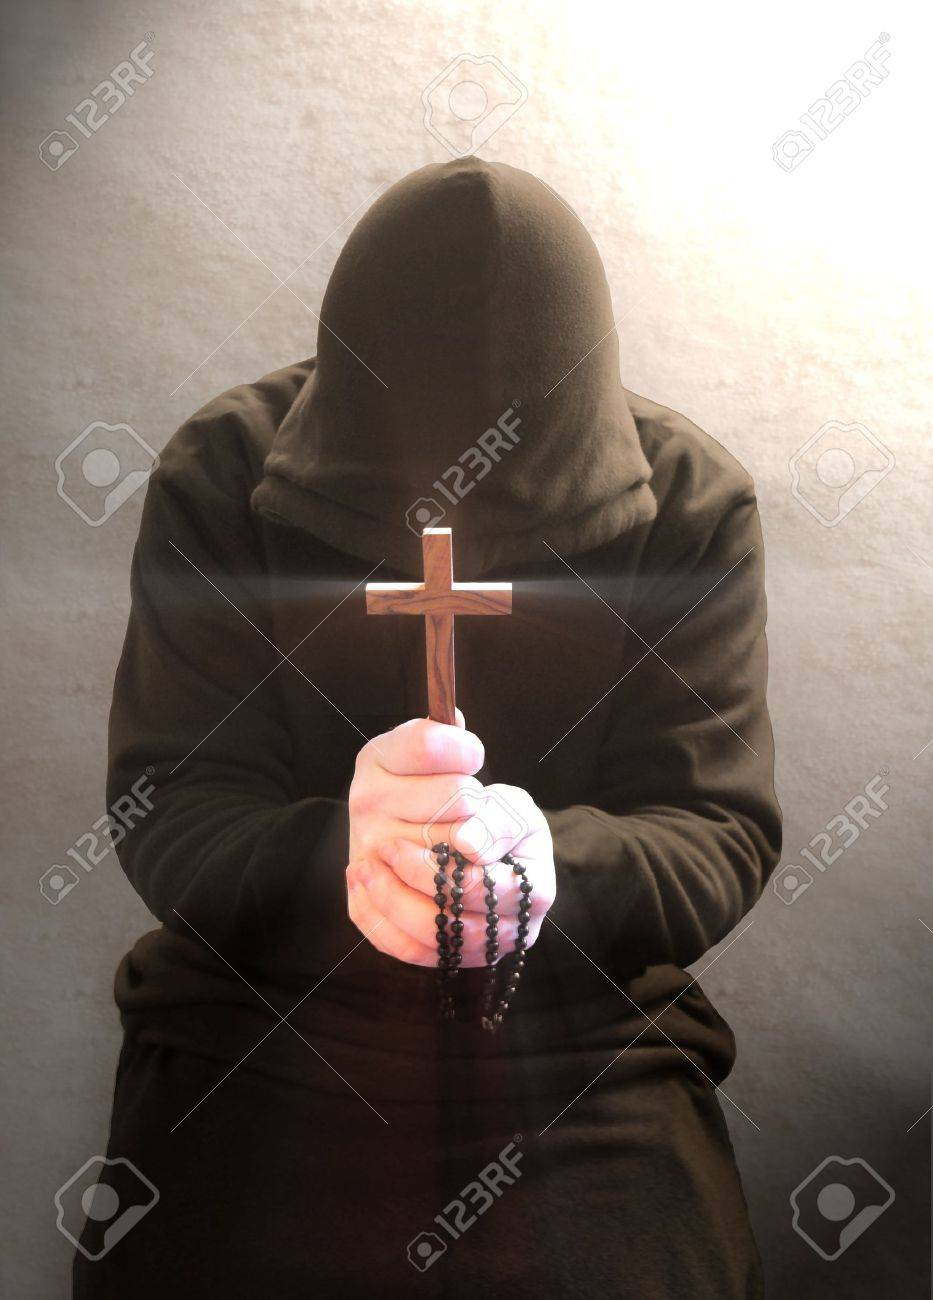 A monk praying with a rosary and crucifix in his hand. Stock Photo - 2668680